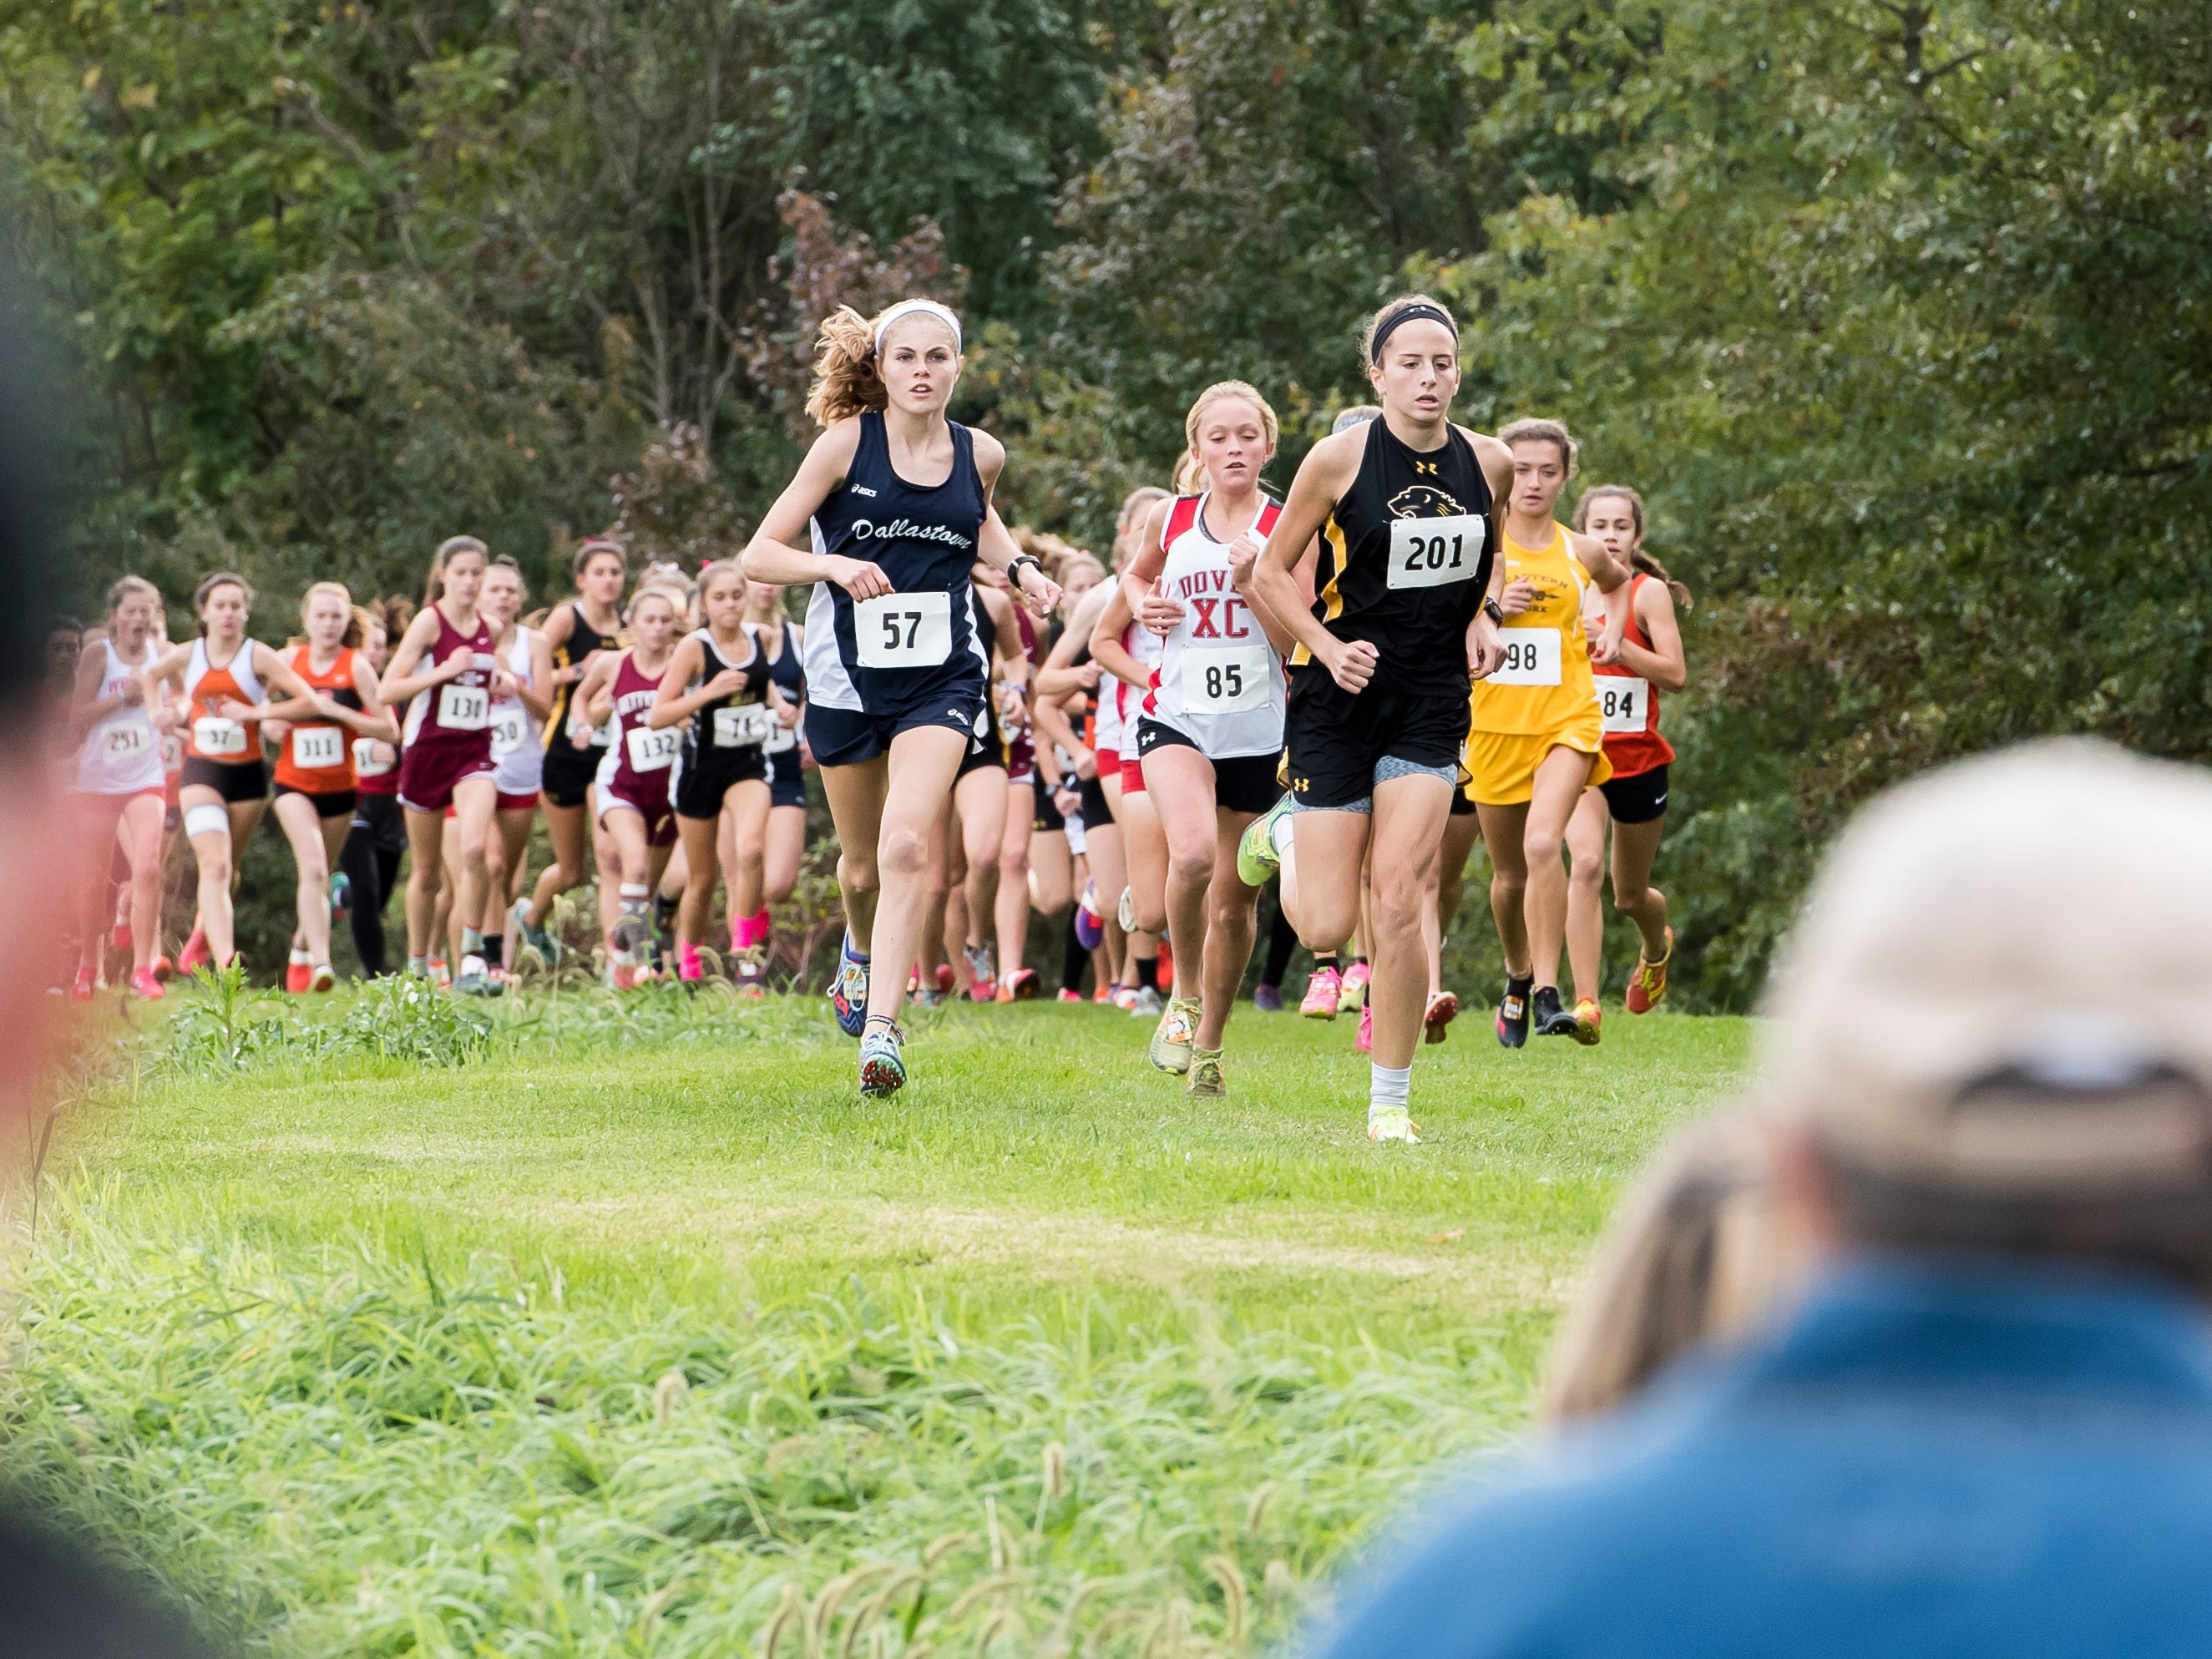 Red Lion's Kiersten Lloyd, right, and Dallastown's Emily Schuler lead the pack during the YAIAA cross country championship at Gettysburg Area High School on Tuesday, October 16, 2018. Lloyd and Schuler finished second and first, respectively.